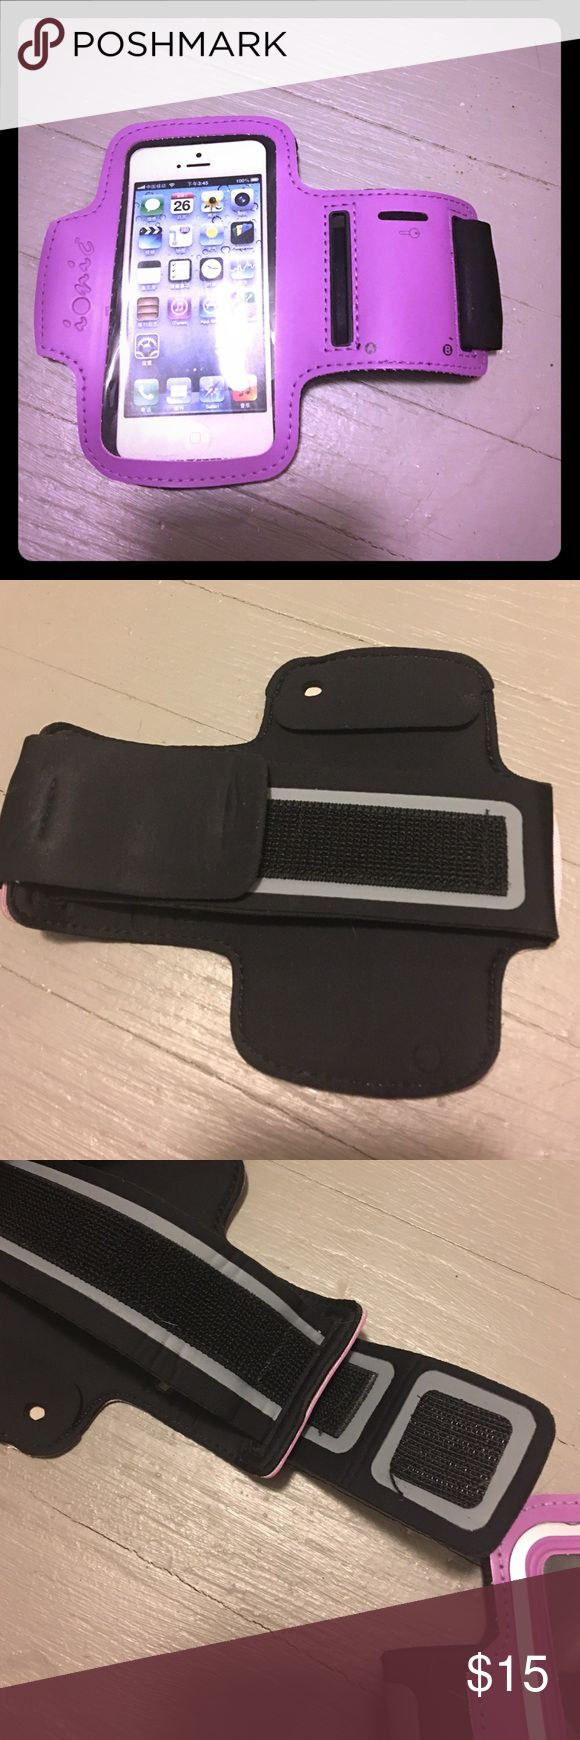 iPhone 5 Arm Band NWOT iPhone 5 armband for working out or running. Brand name is Ionic. ionic Accessories Phone Cases